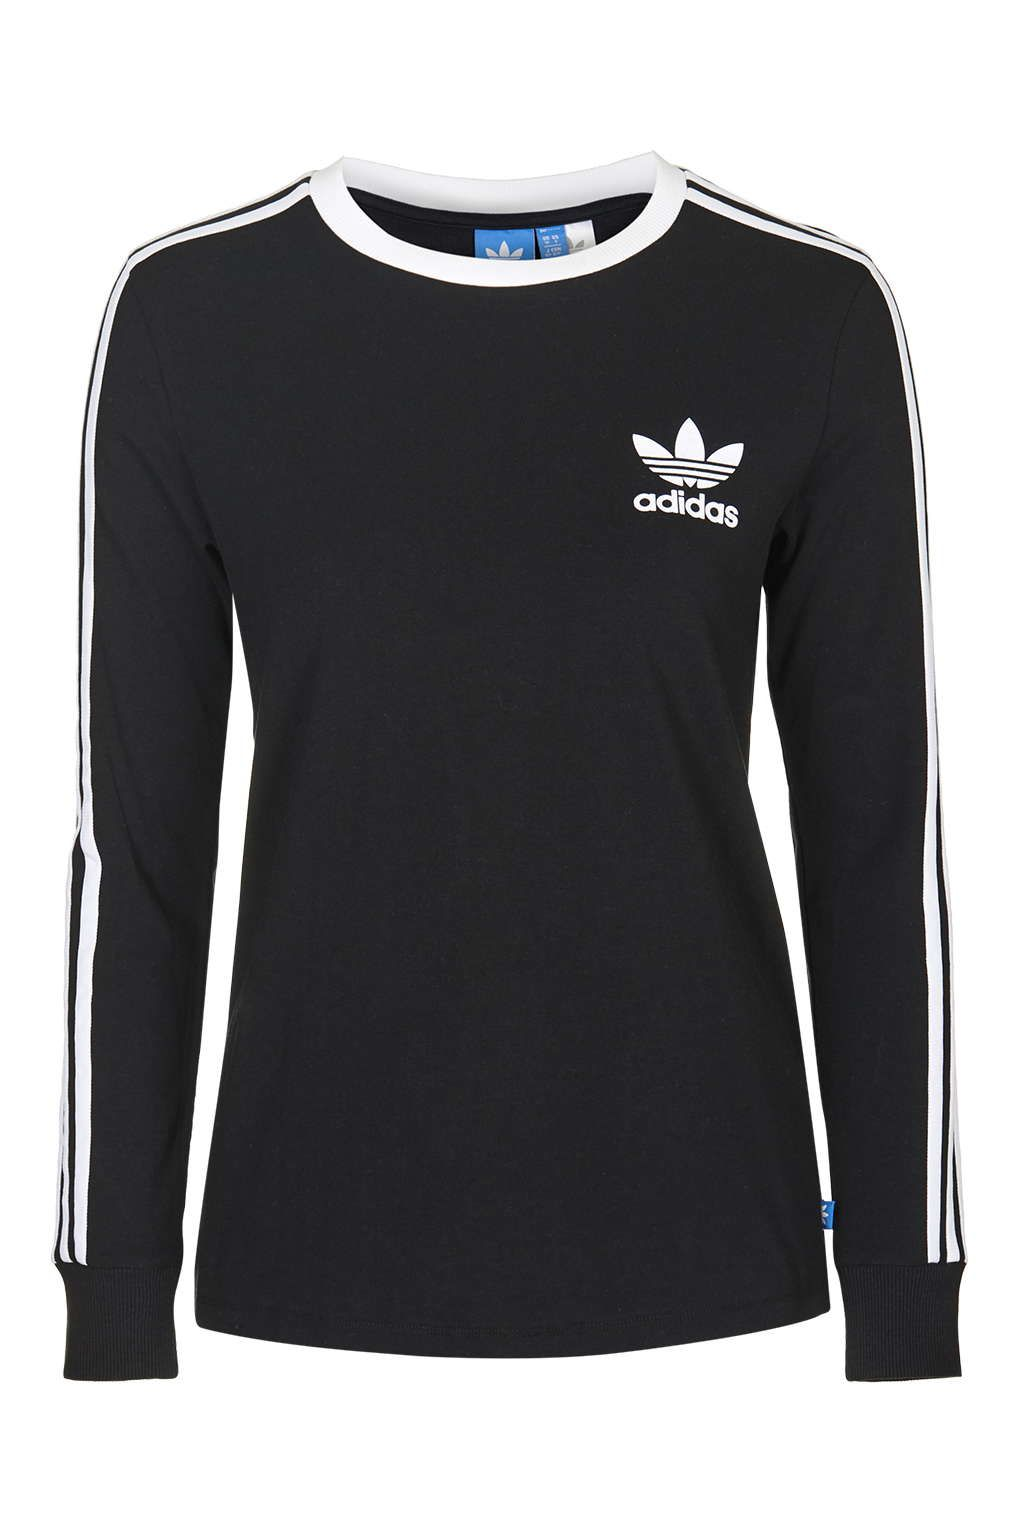 474c8960 Three Stripe Long Sleeve Top Adidas Originals | Adidas | Adidas ...